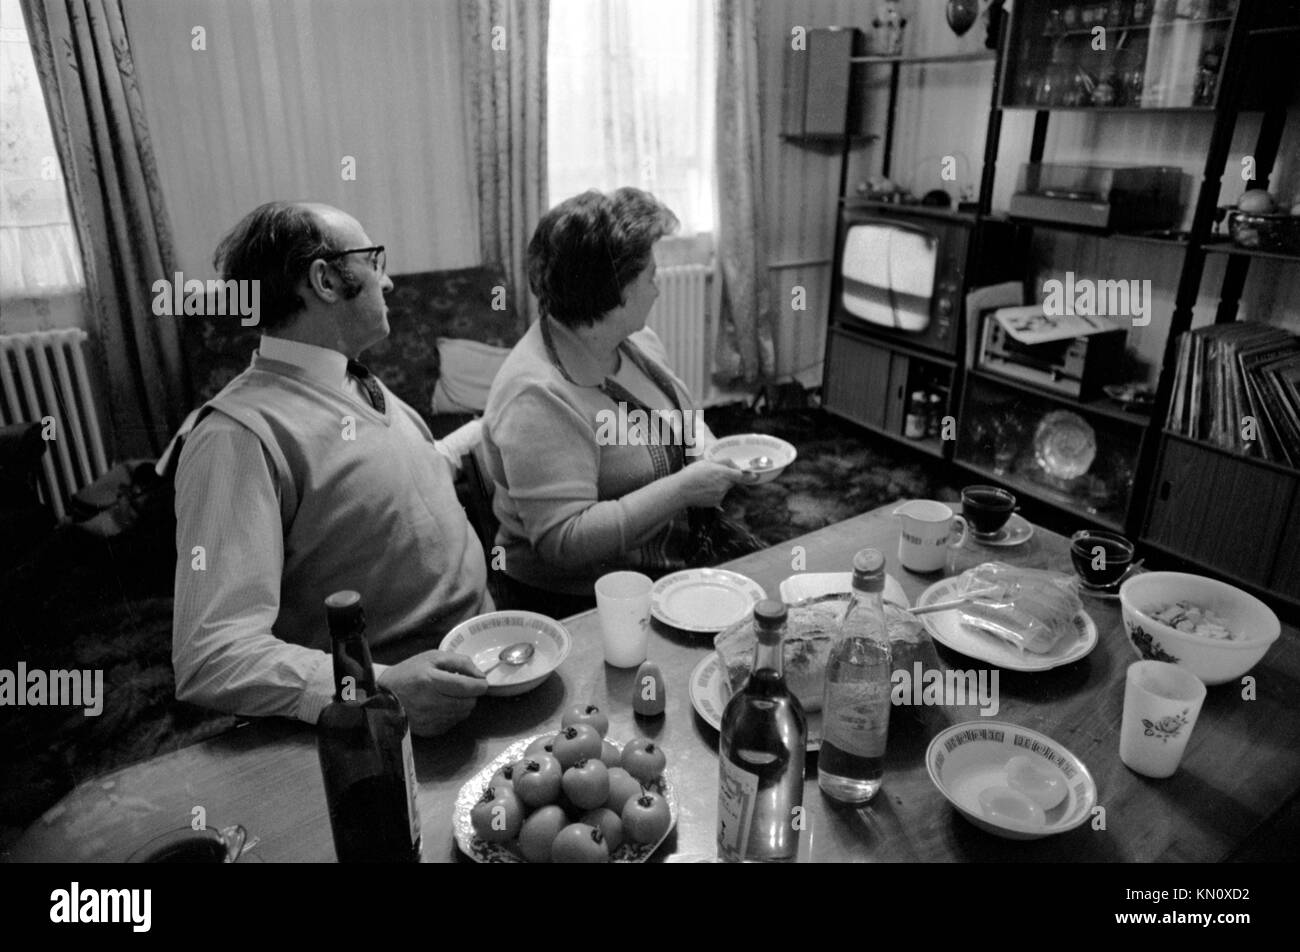 Watching TV television while eating dinner at dining room table,  interior of flat north London 1970s UK HOMER SYKES - Stock Image